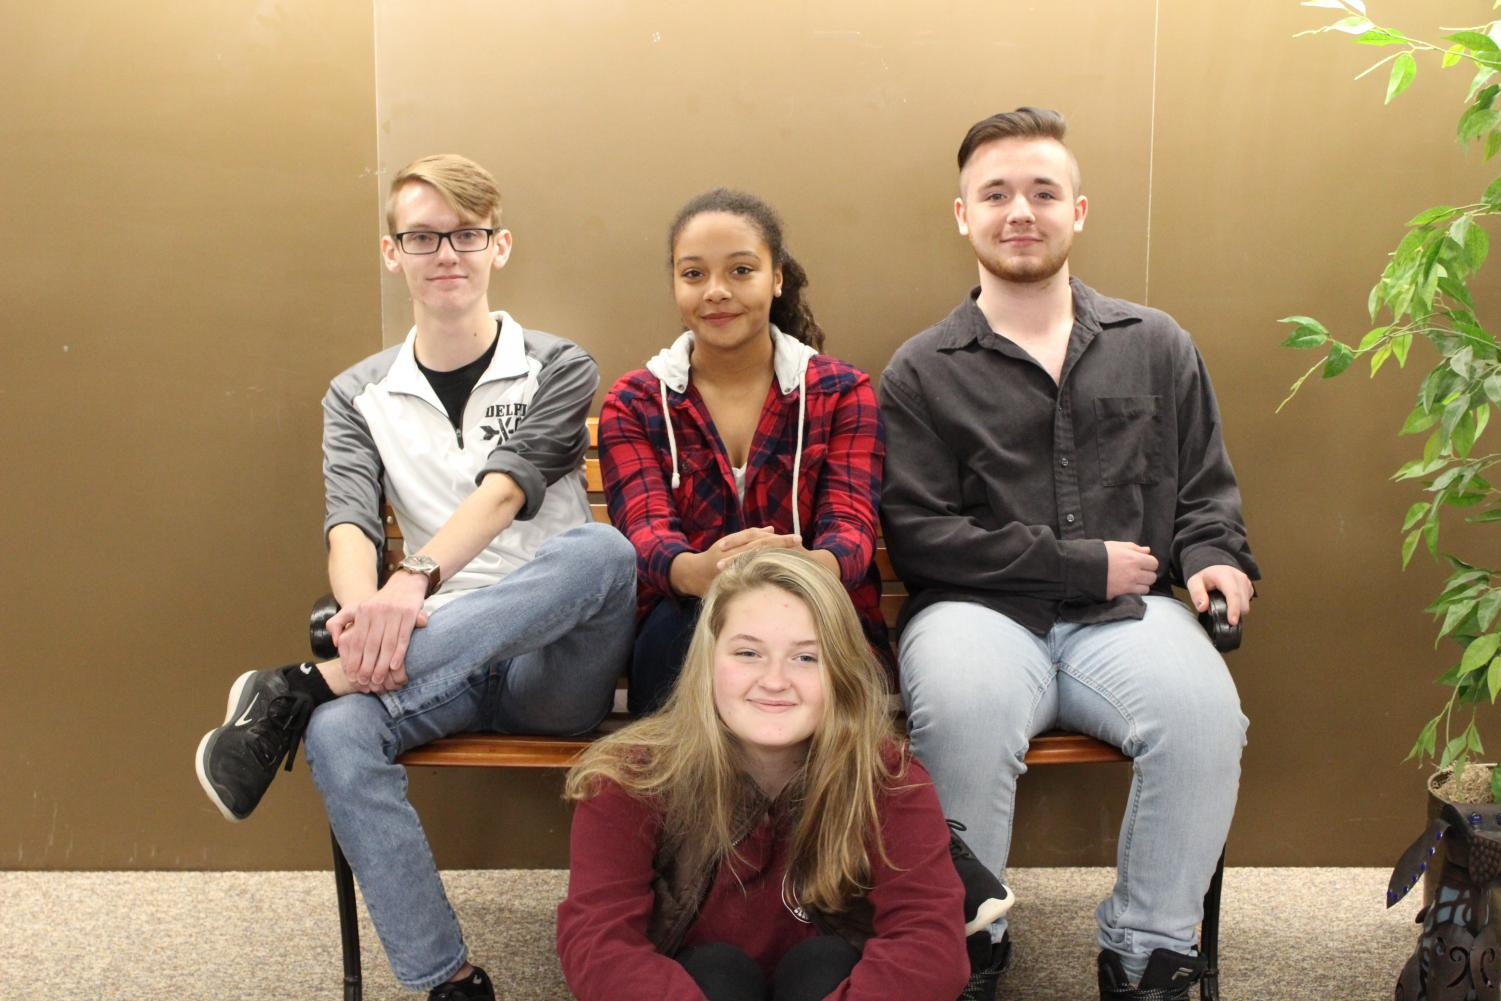 2017 Halloween writing contest winners are sophomores Nick Roberson, Anoria Webb, Gavin Stevens, and Ensley Circle